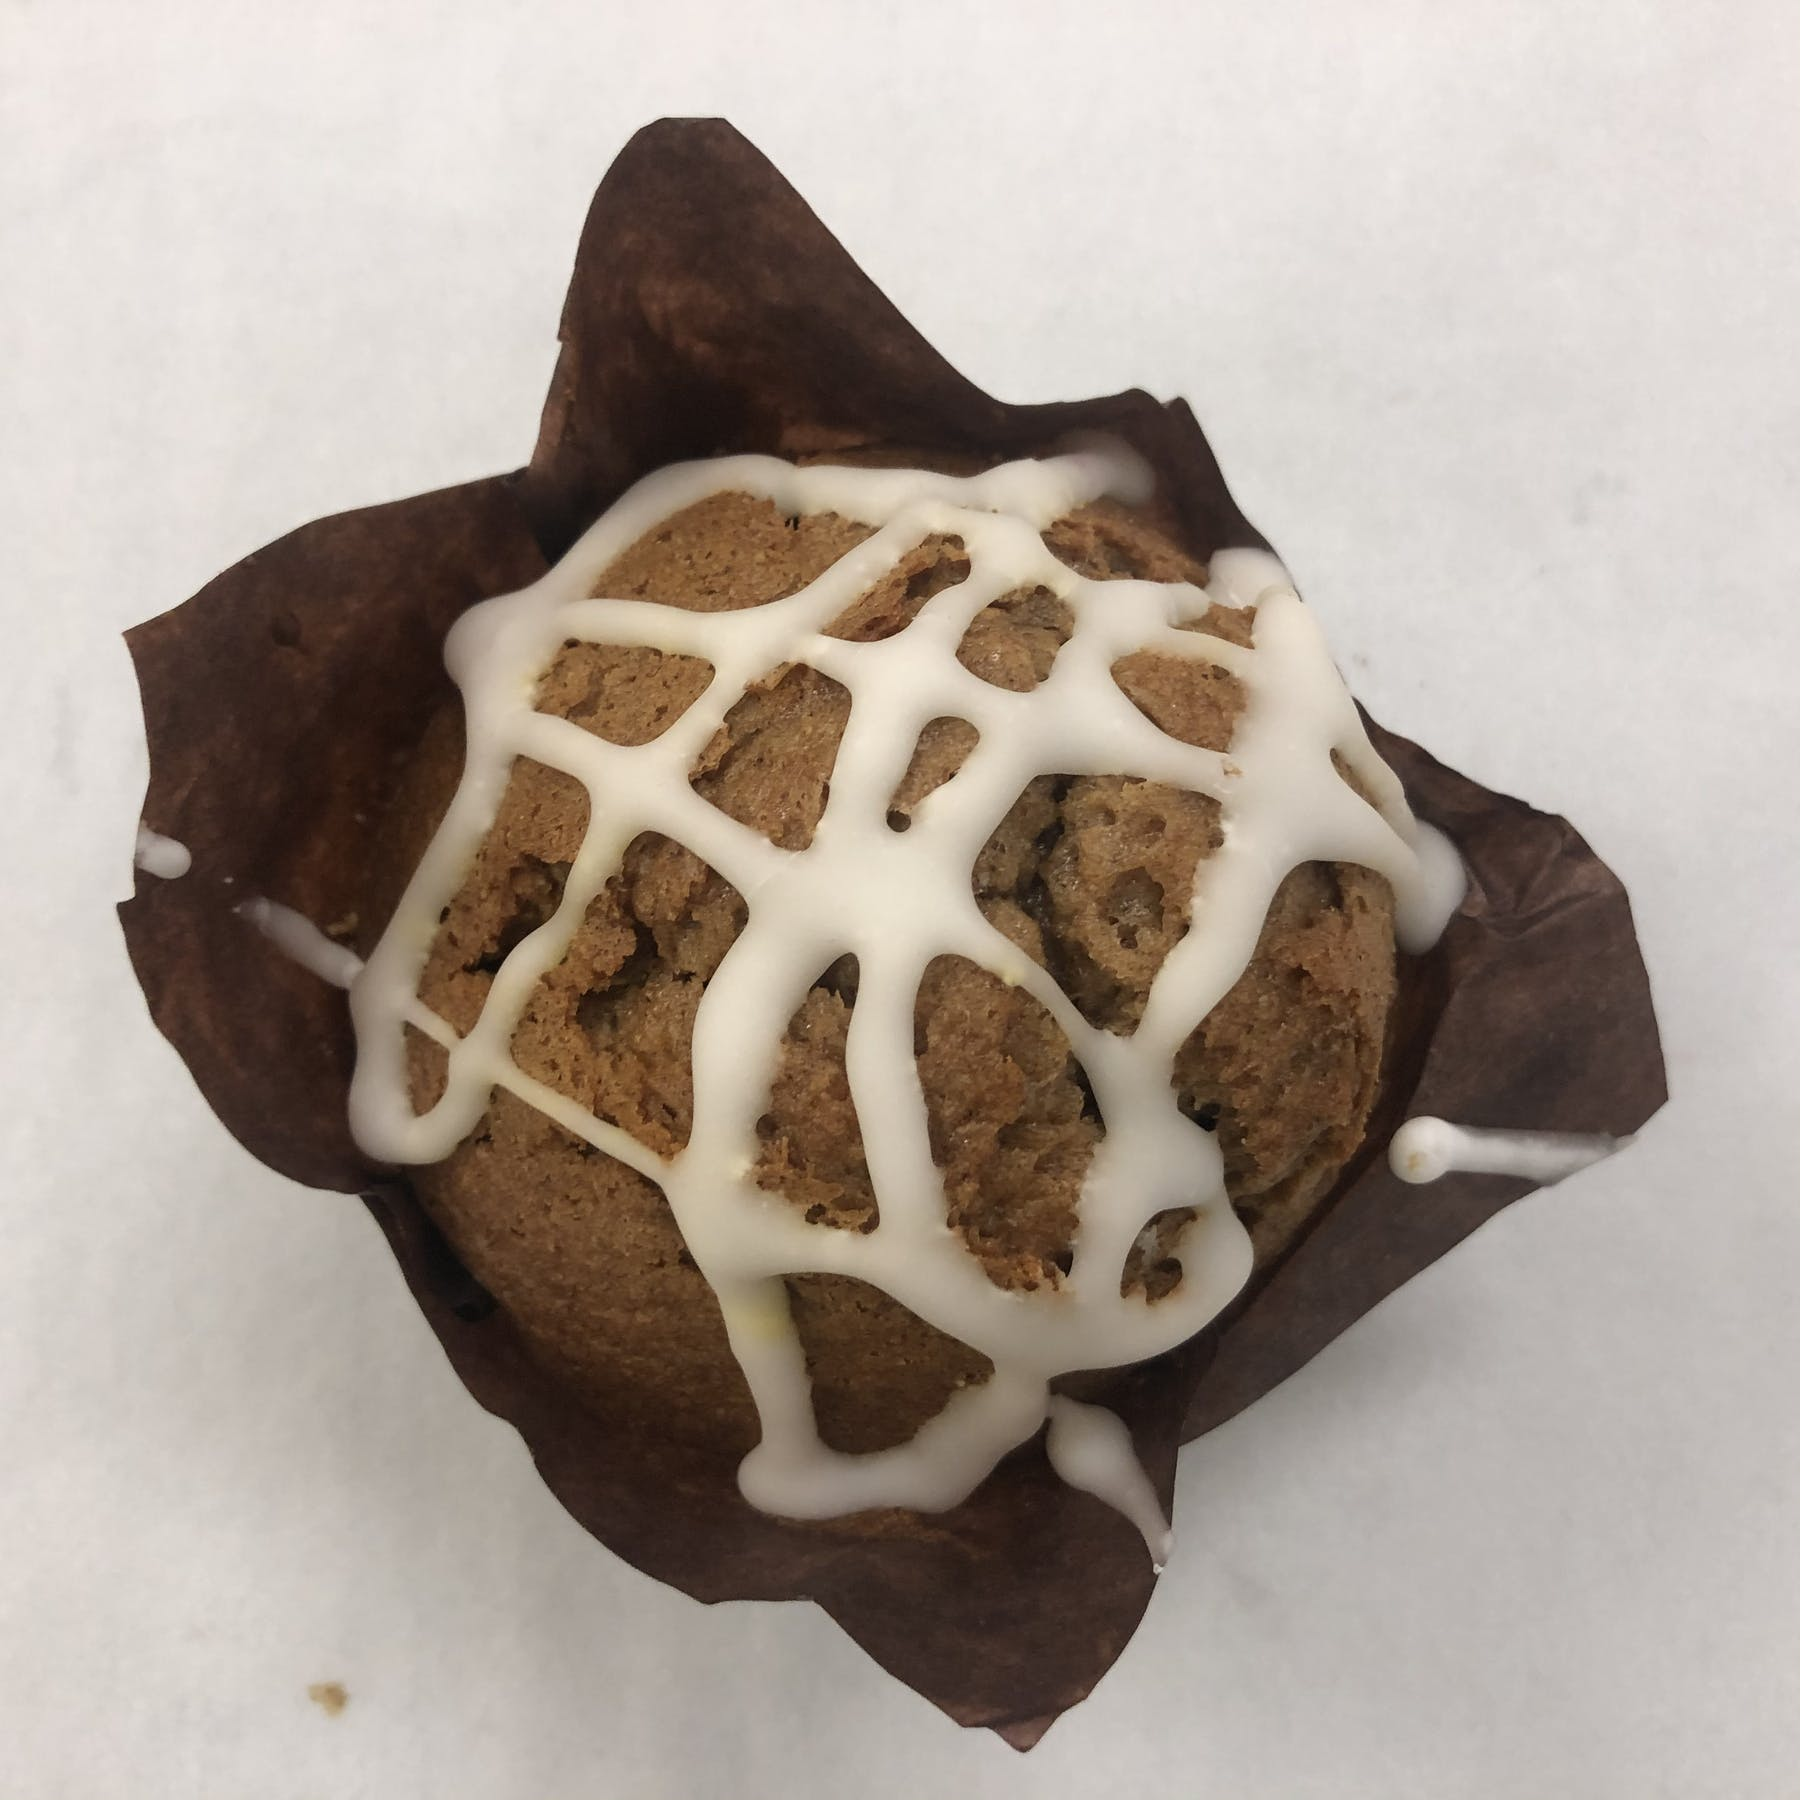 a muffin with glaze